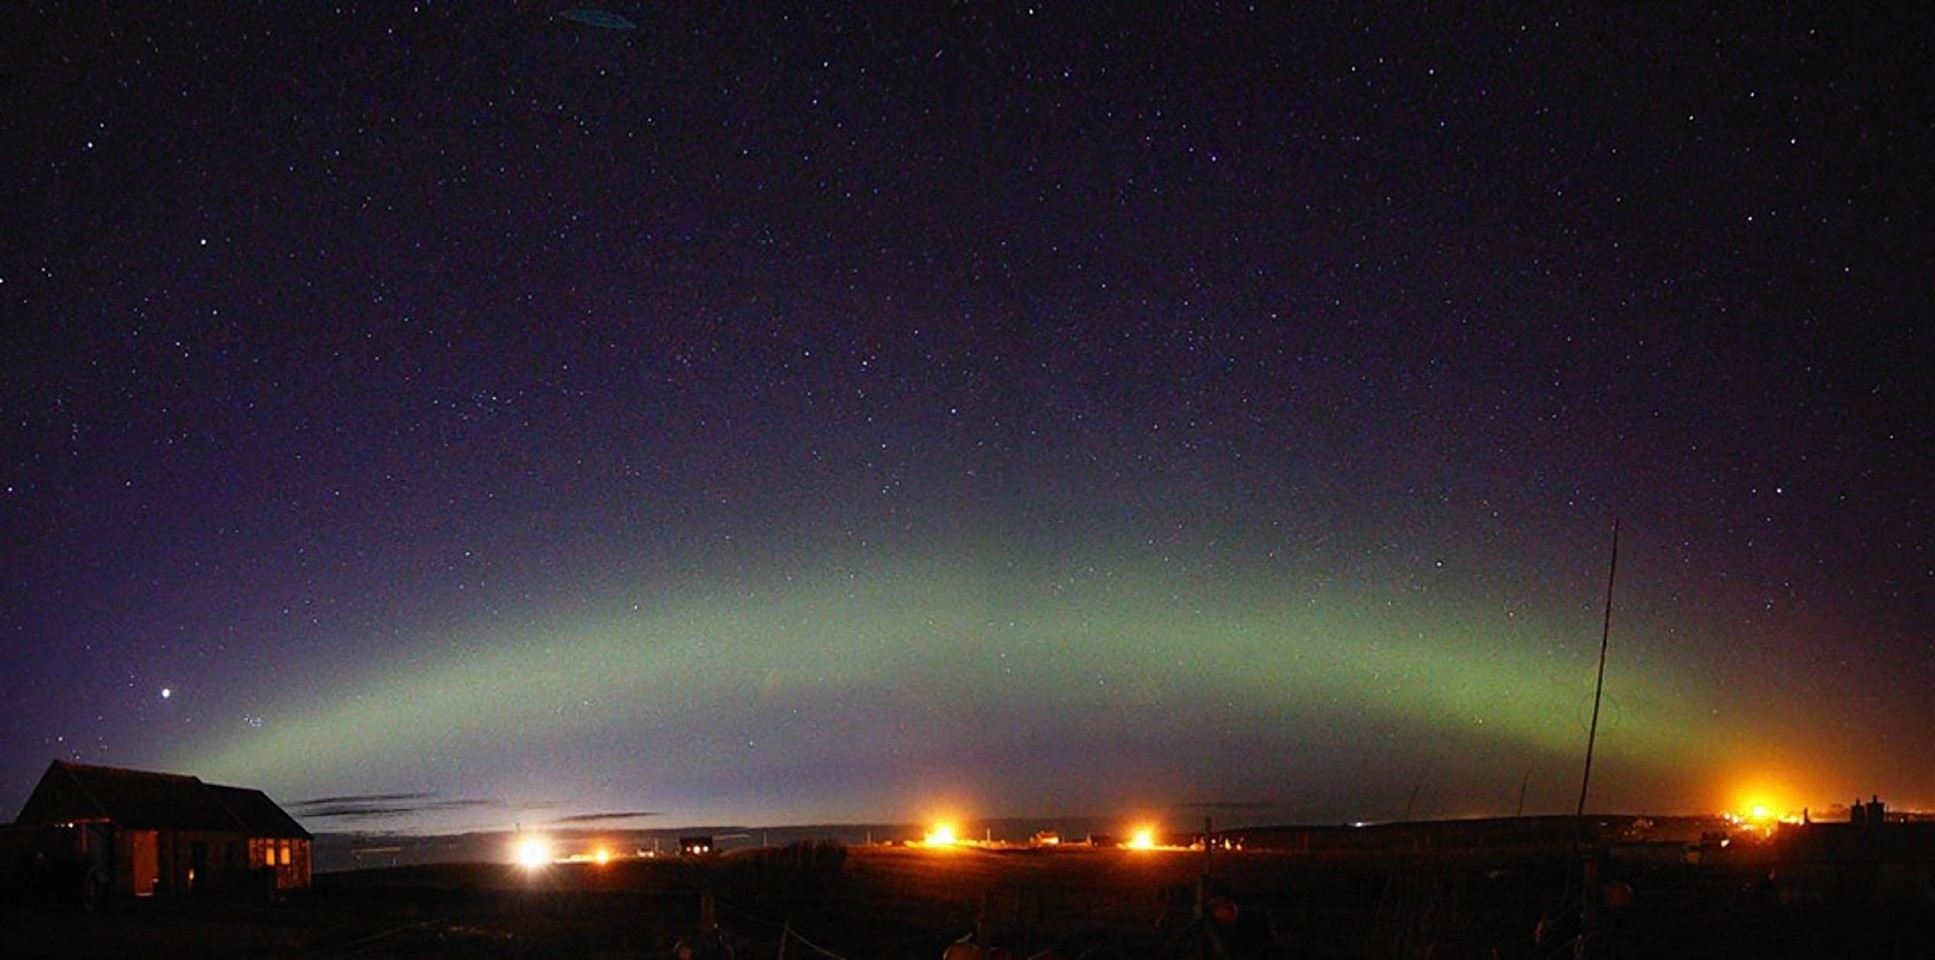 An aurora rainbow captured from the Isle of Lewis by photographer John Gray.